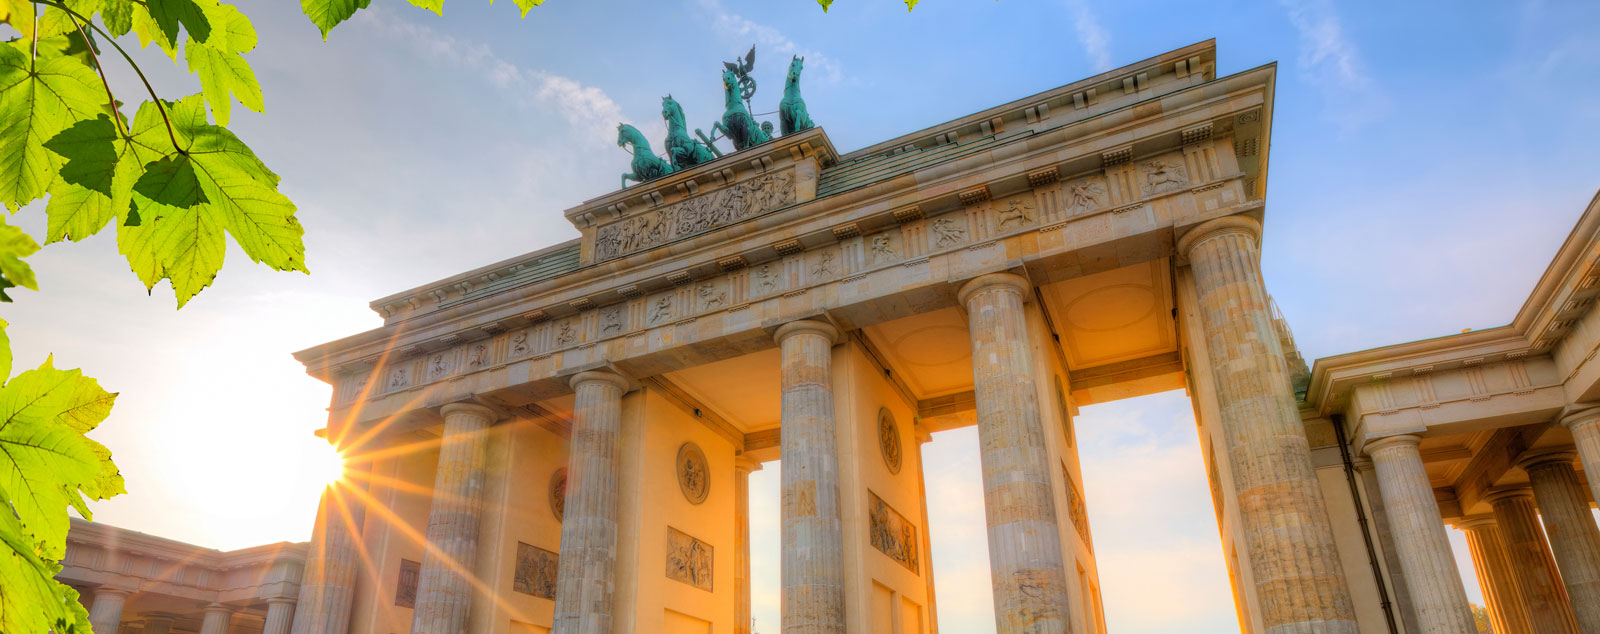 The Brandenburg Gate with sun shining behind